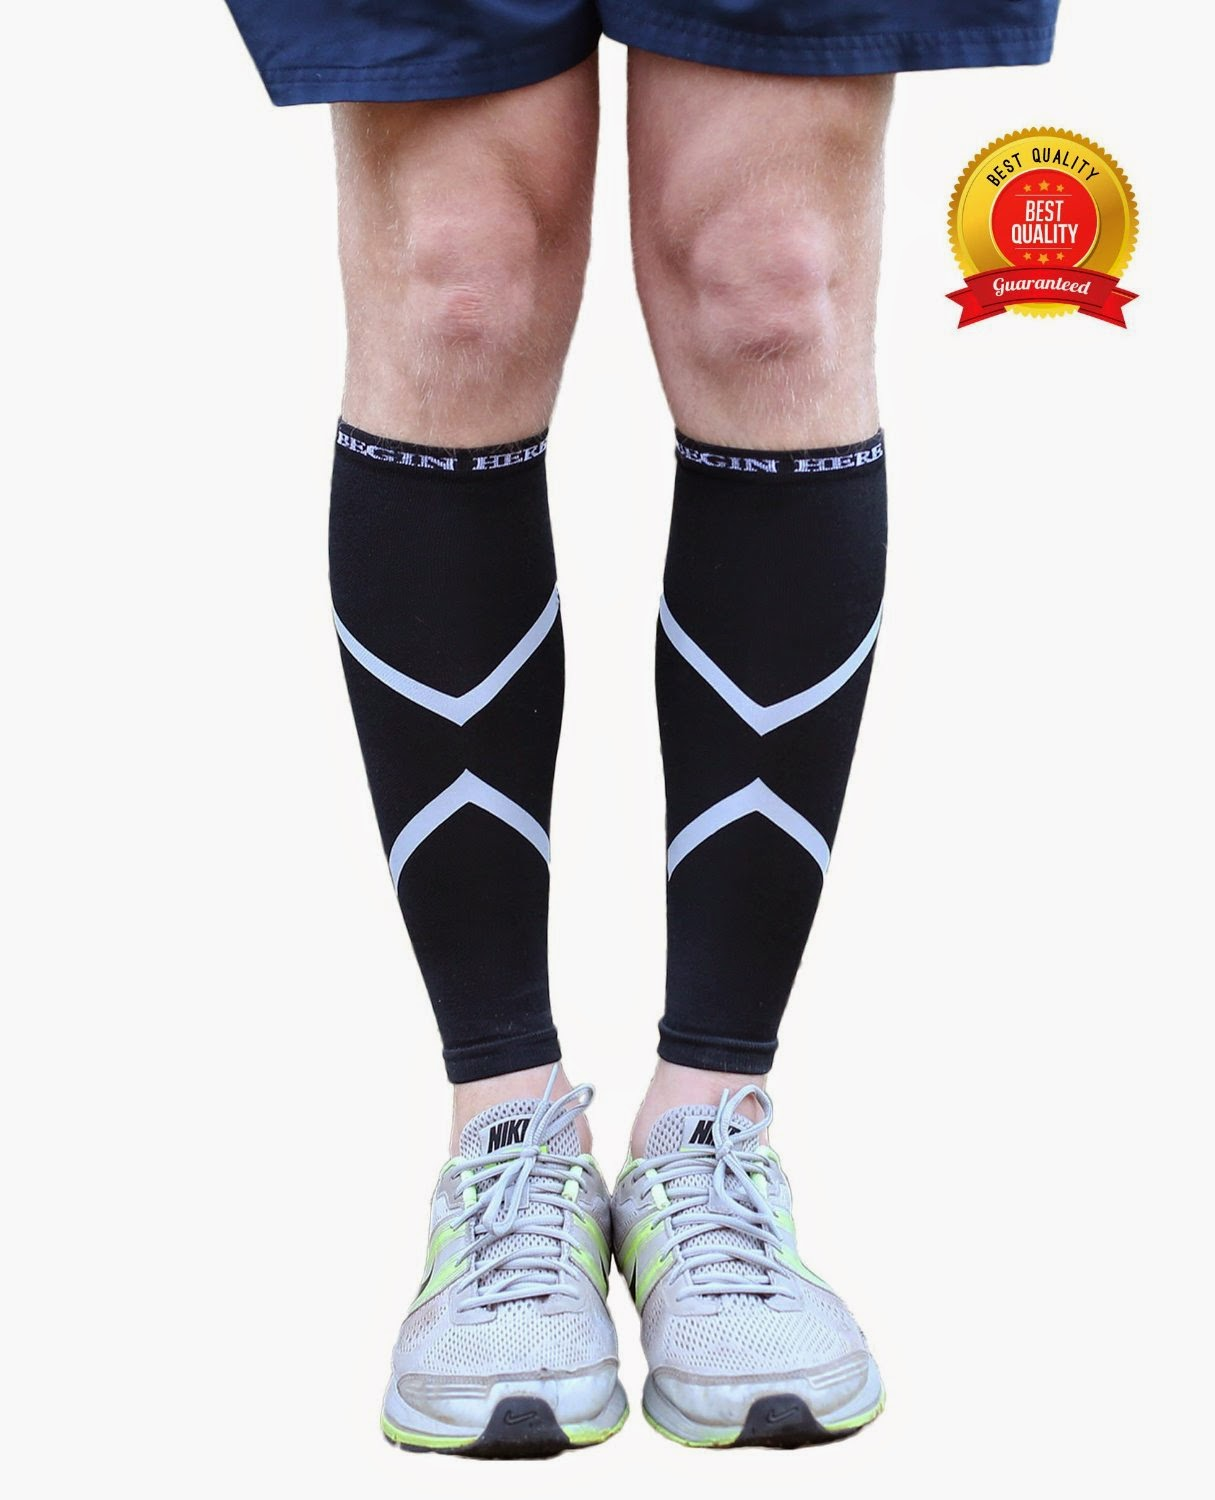 http://www.amazon.com/calf-compression-sleeve-foundations-reflective/dp/b00qsxwaz6/ref=sr_1_1?s=sporting-goods&ie=utf8&qid=1425439053&sr=1-1&keywords=calf+sleeves